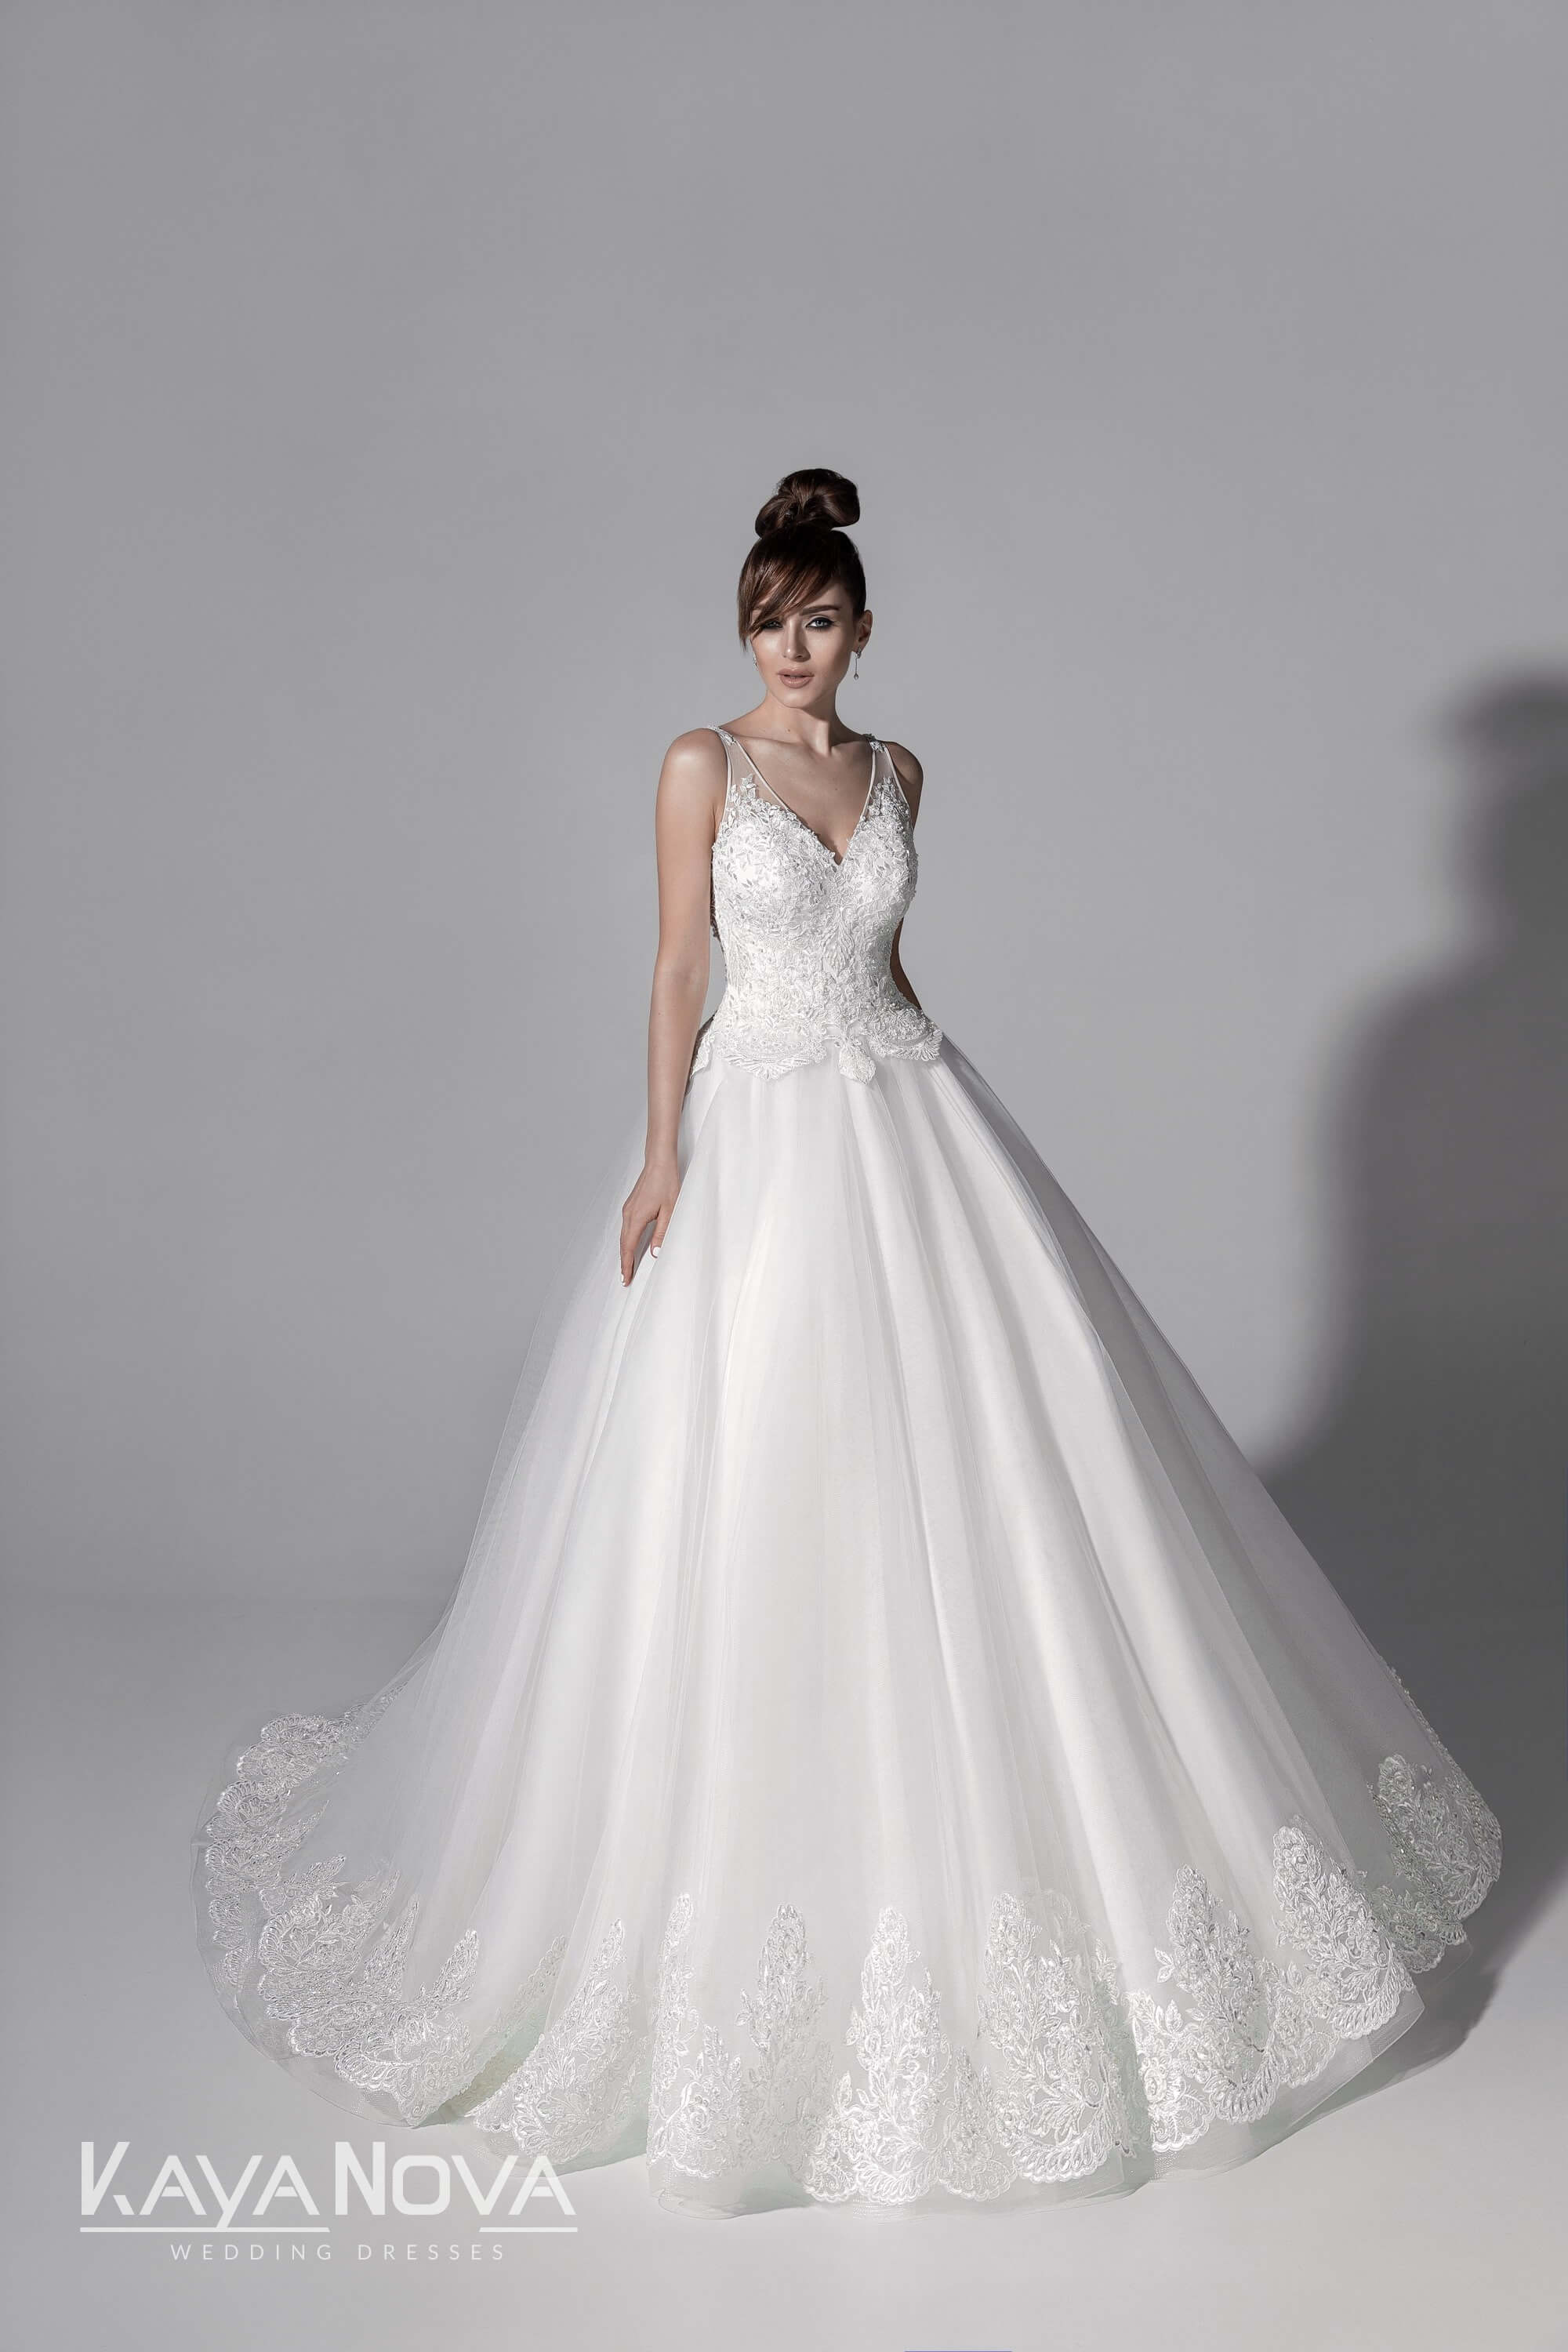 https://kayawedding.com/images/stories/virtuemart/product/Ulyana6.jpg